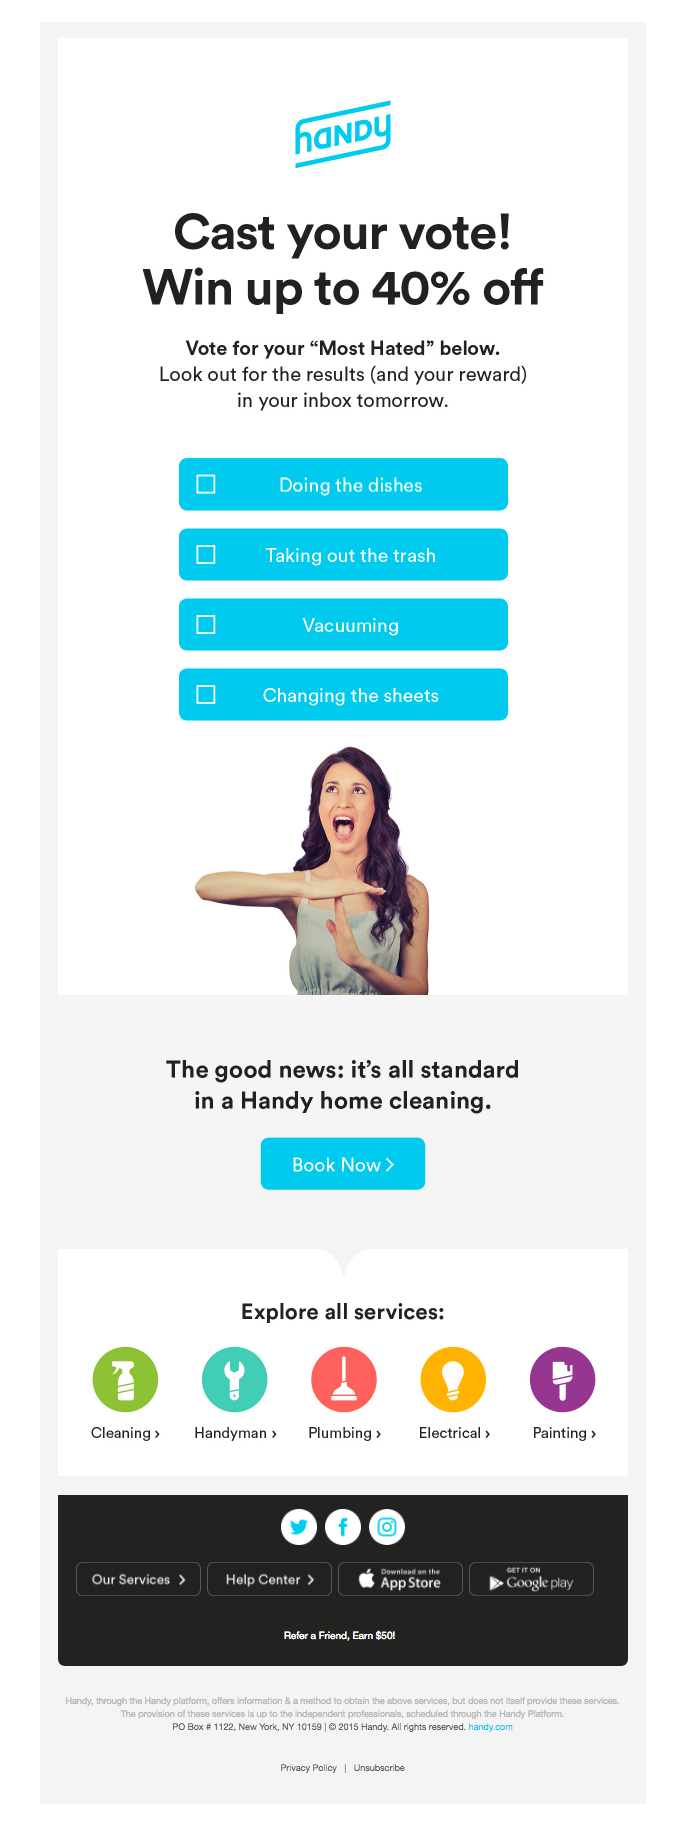 Really Good Emails, what do you hate most about cleaning?